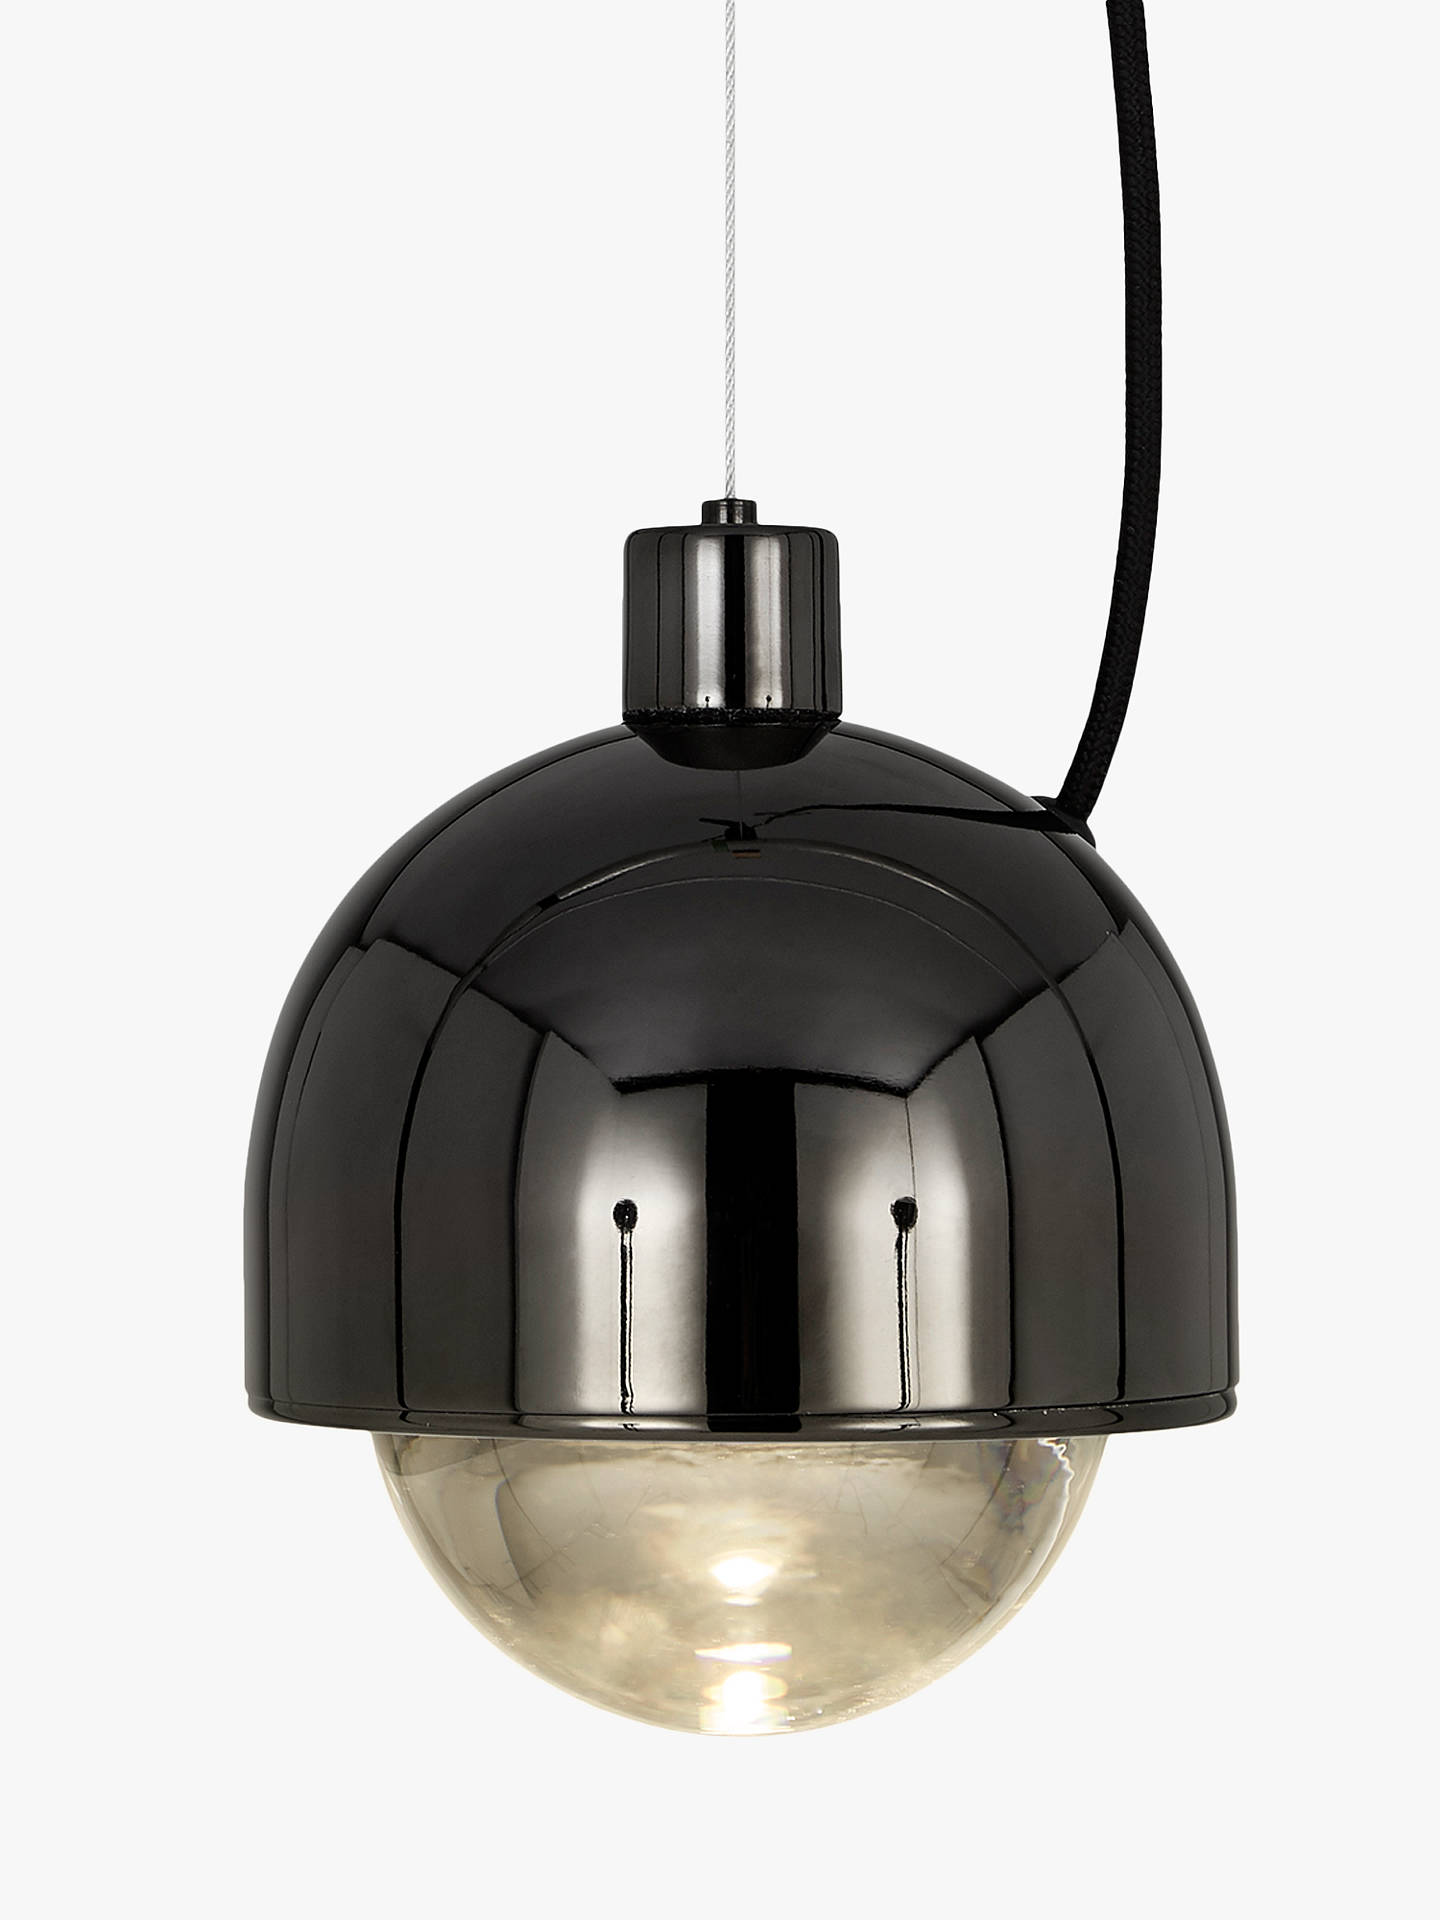 Buy Tom Dixon Spot Ceiling Pendant, Black Online at johnlewis.com